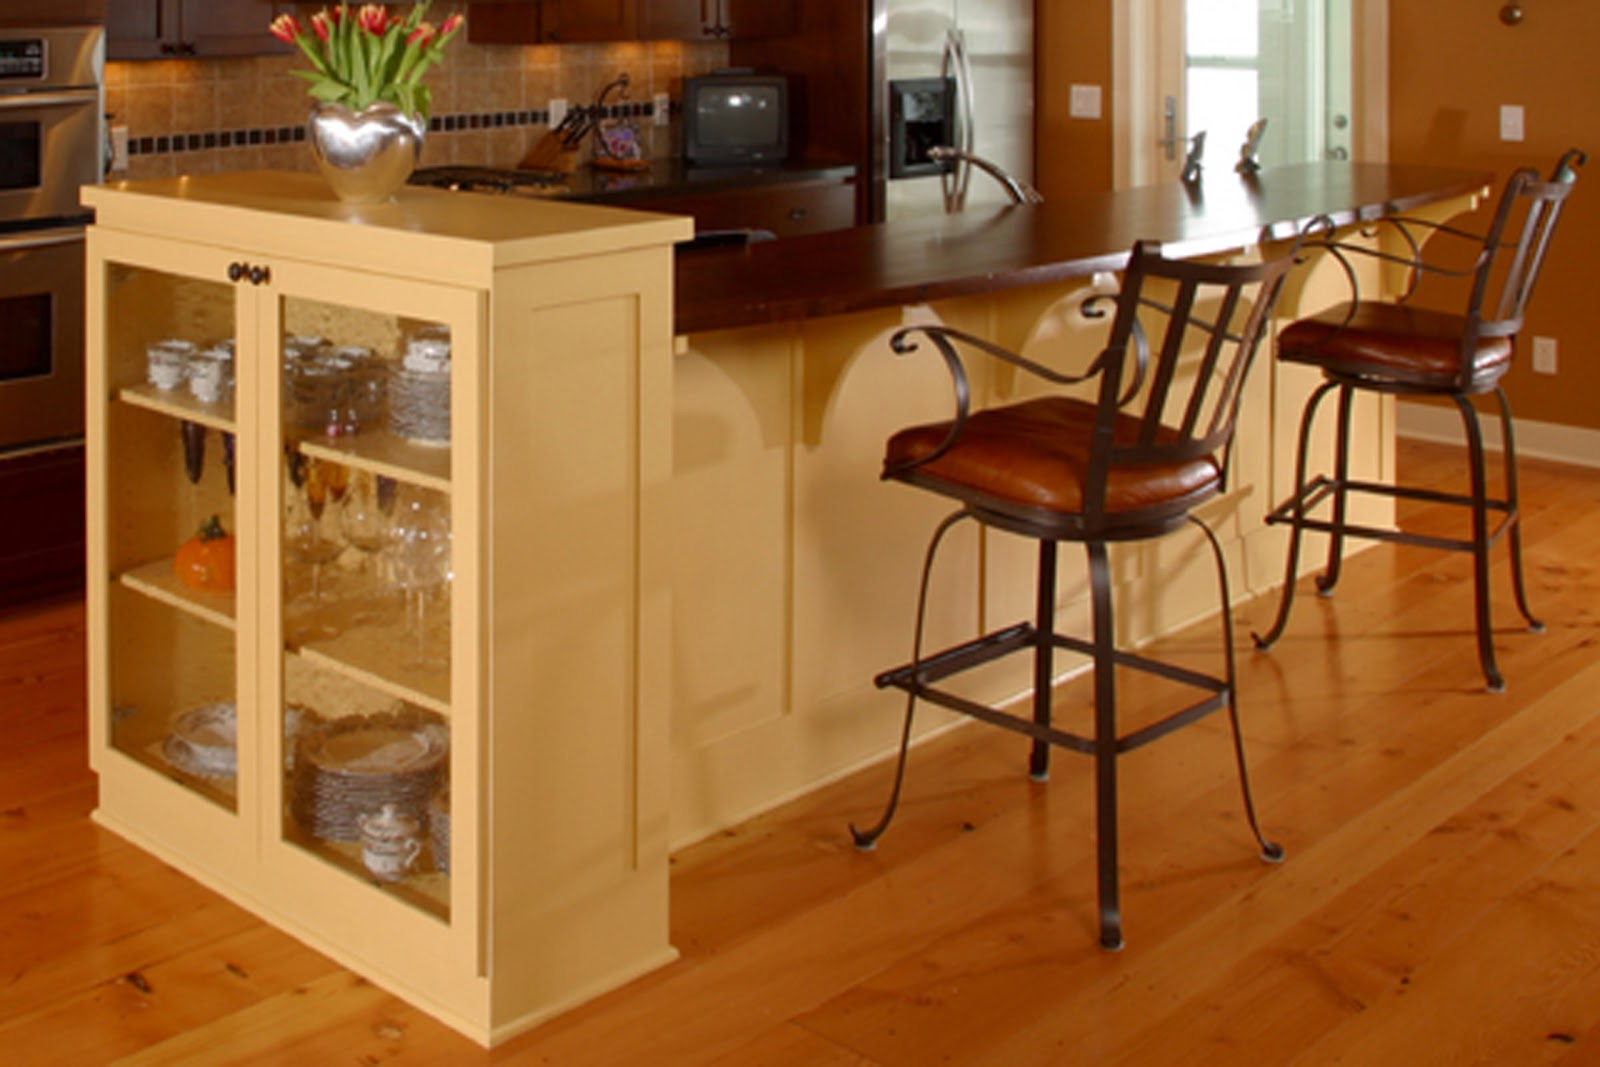 For Kitchen Islands In Small Kitchens Kitchen Islands For Small Kitchens Ikea Kitchen Islands For Small